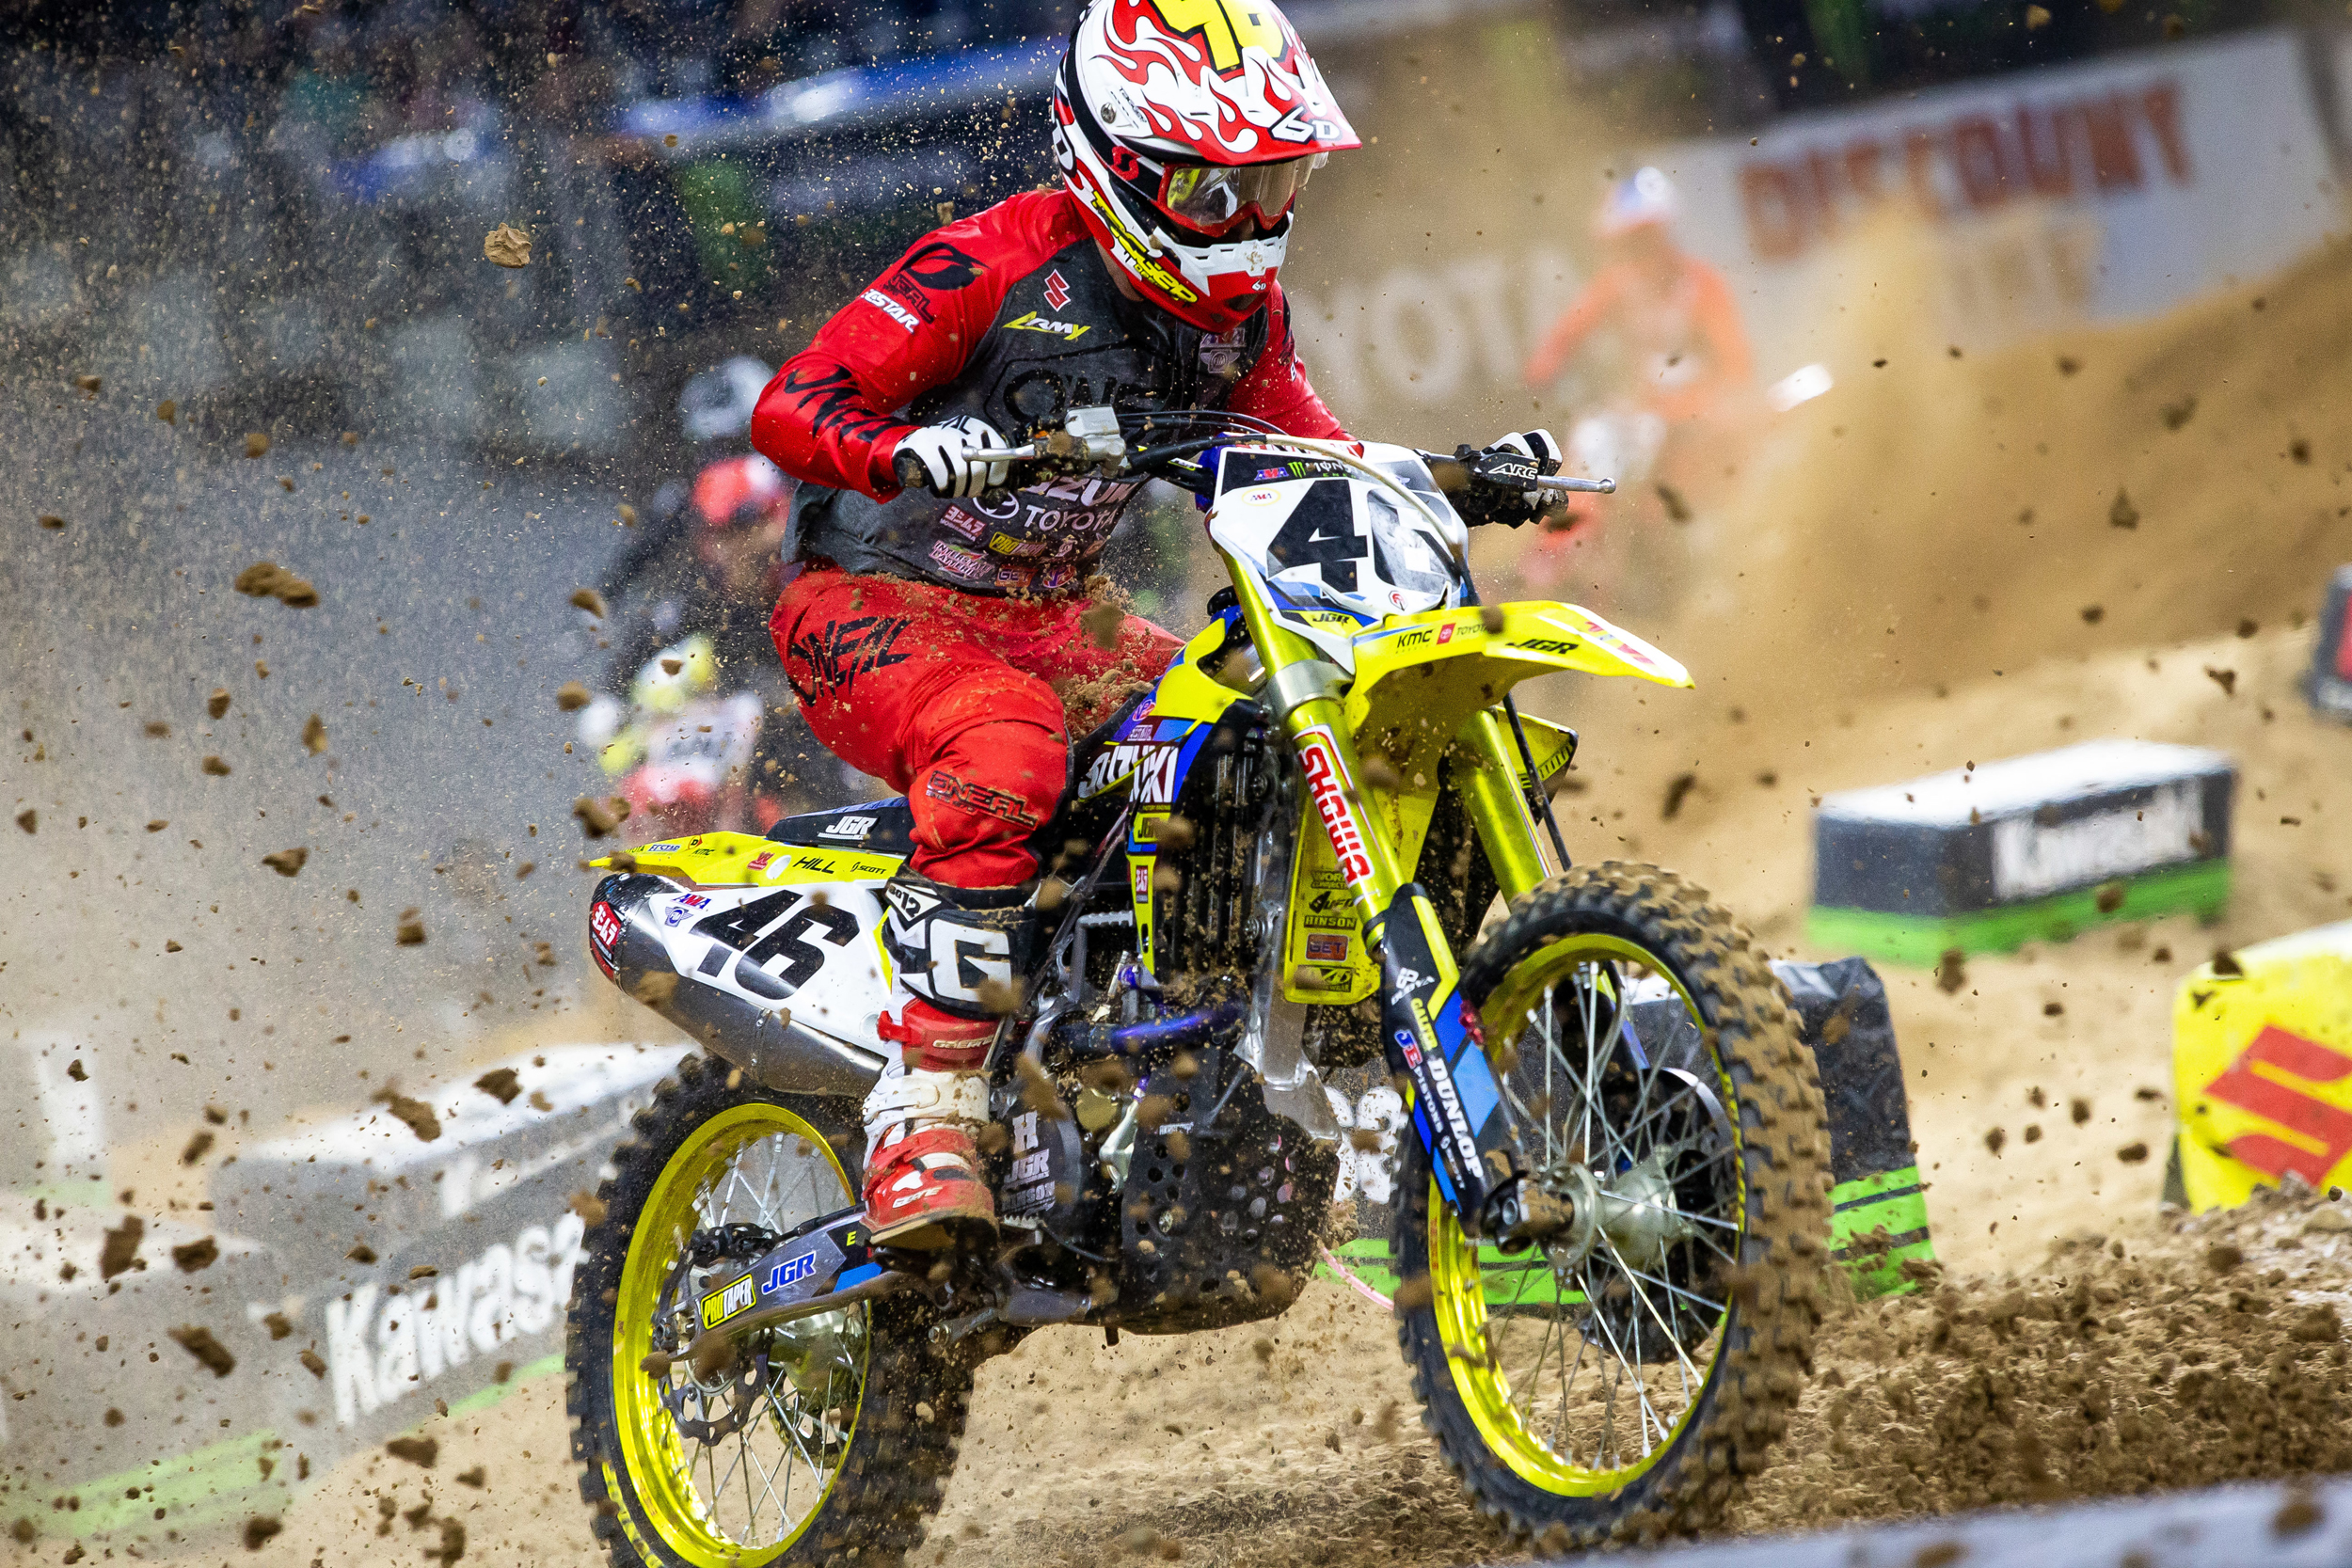 Justin Hill (#46) tackled Houston's technical track on his RM-Z450